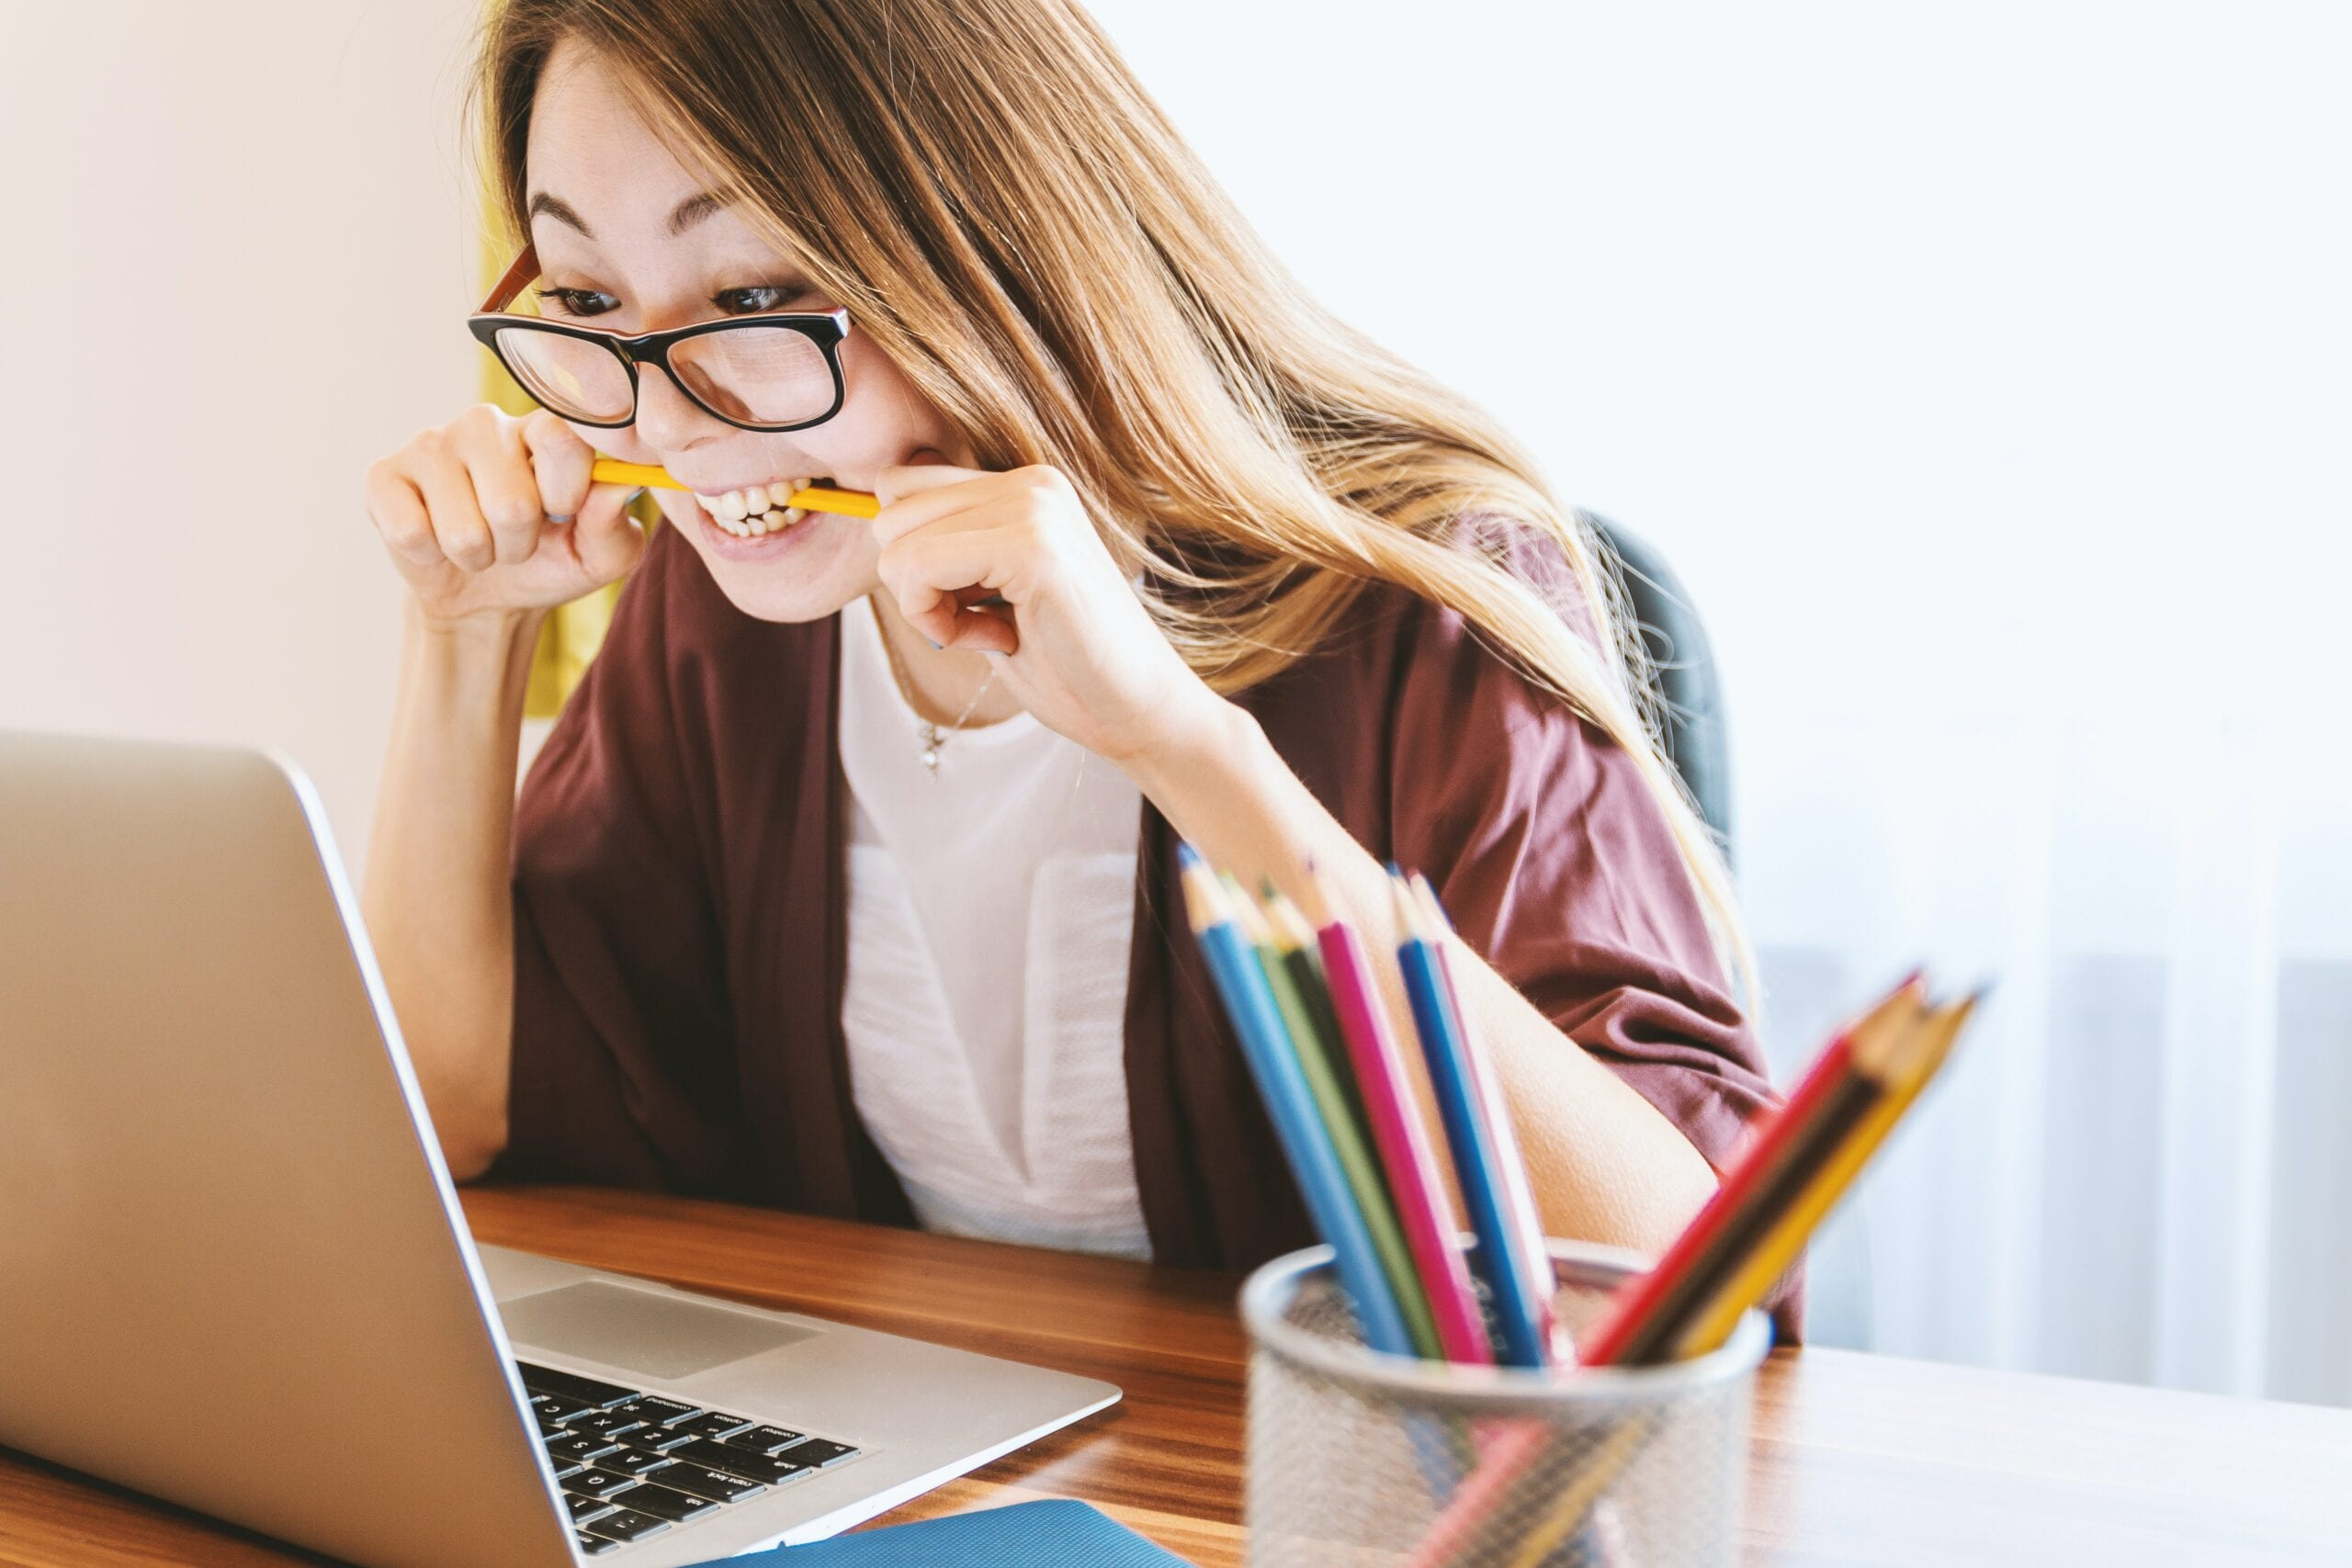 woman in glasses biting a pencil because she is worried about marketing needs and strategy